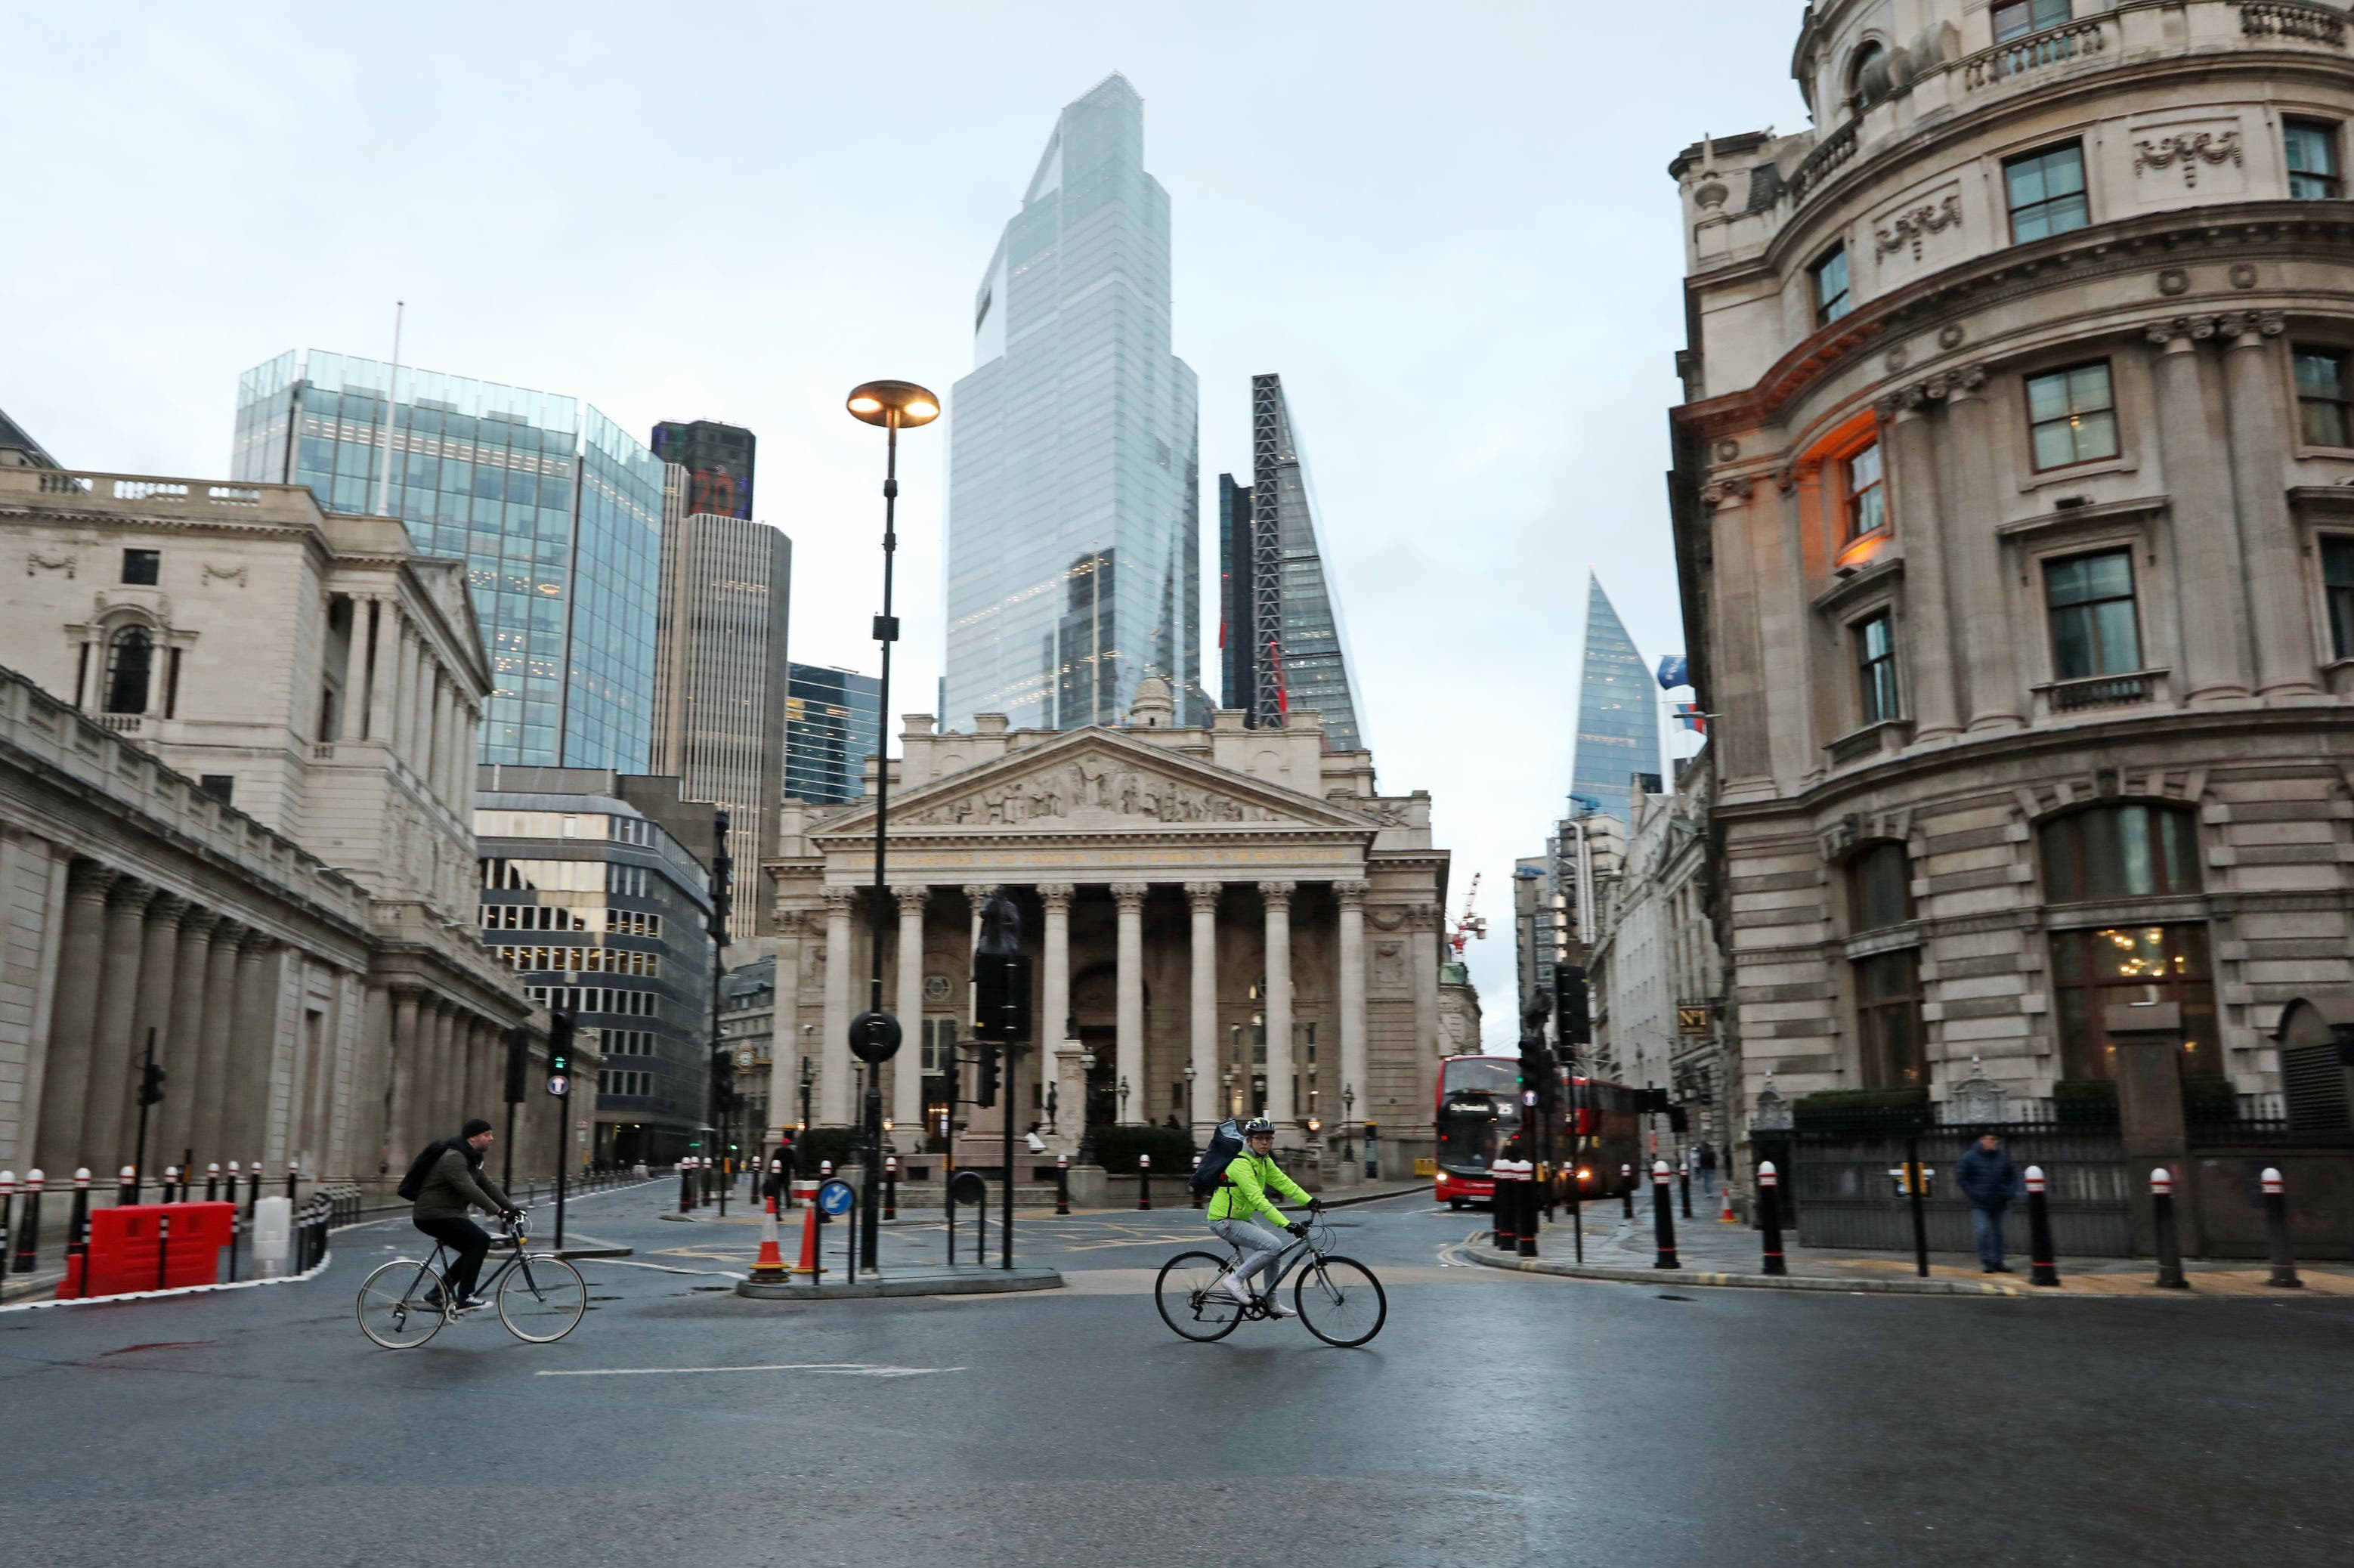 <p>Cyclists pass through an almost-deserted Bank junction in the heart of the City of London&nbsp;</p>